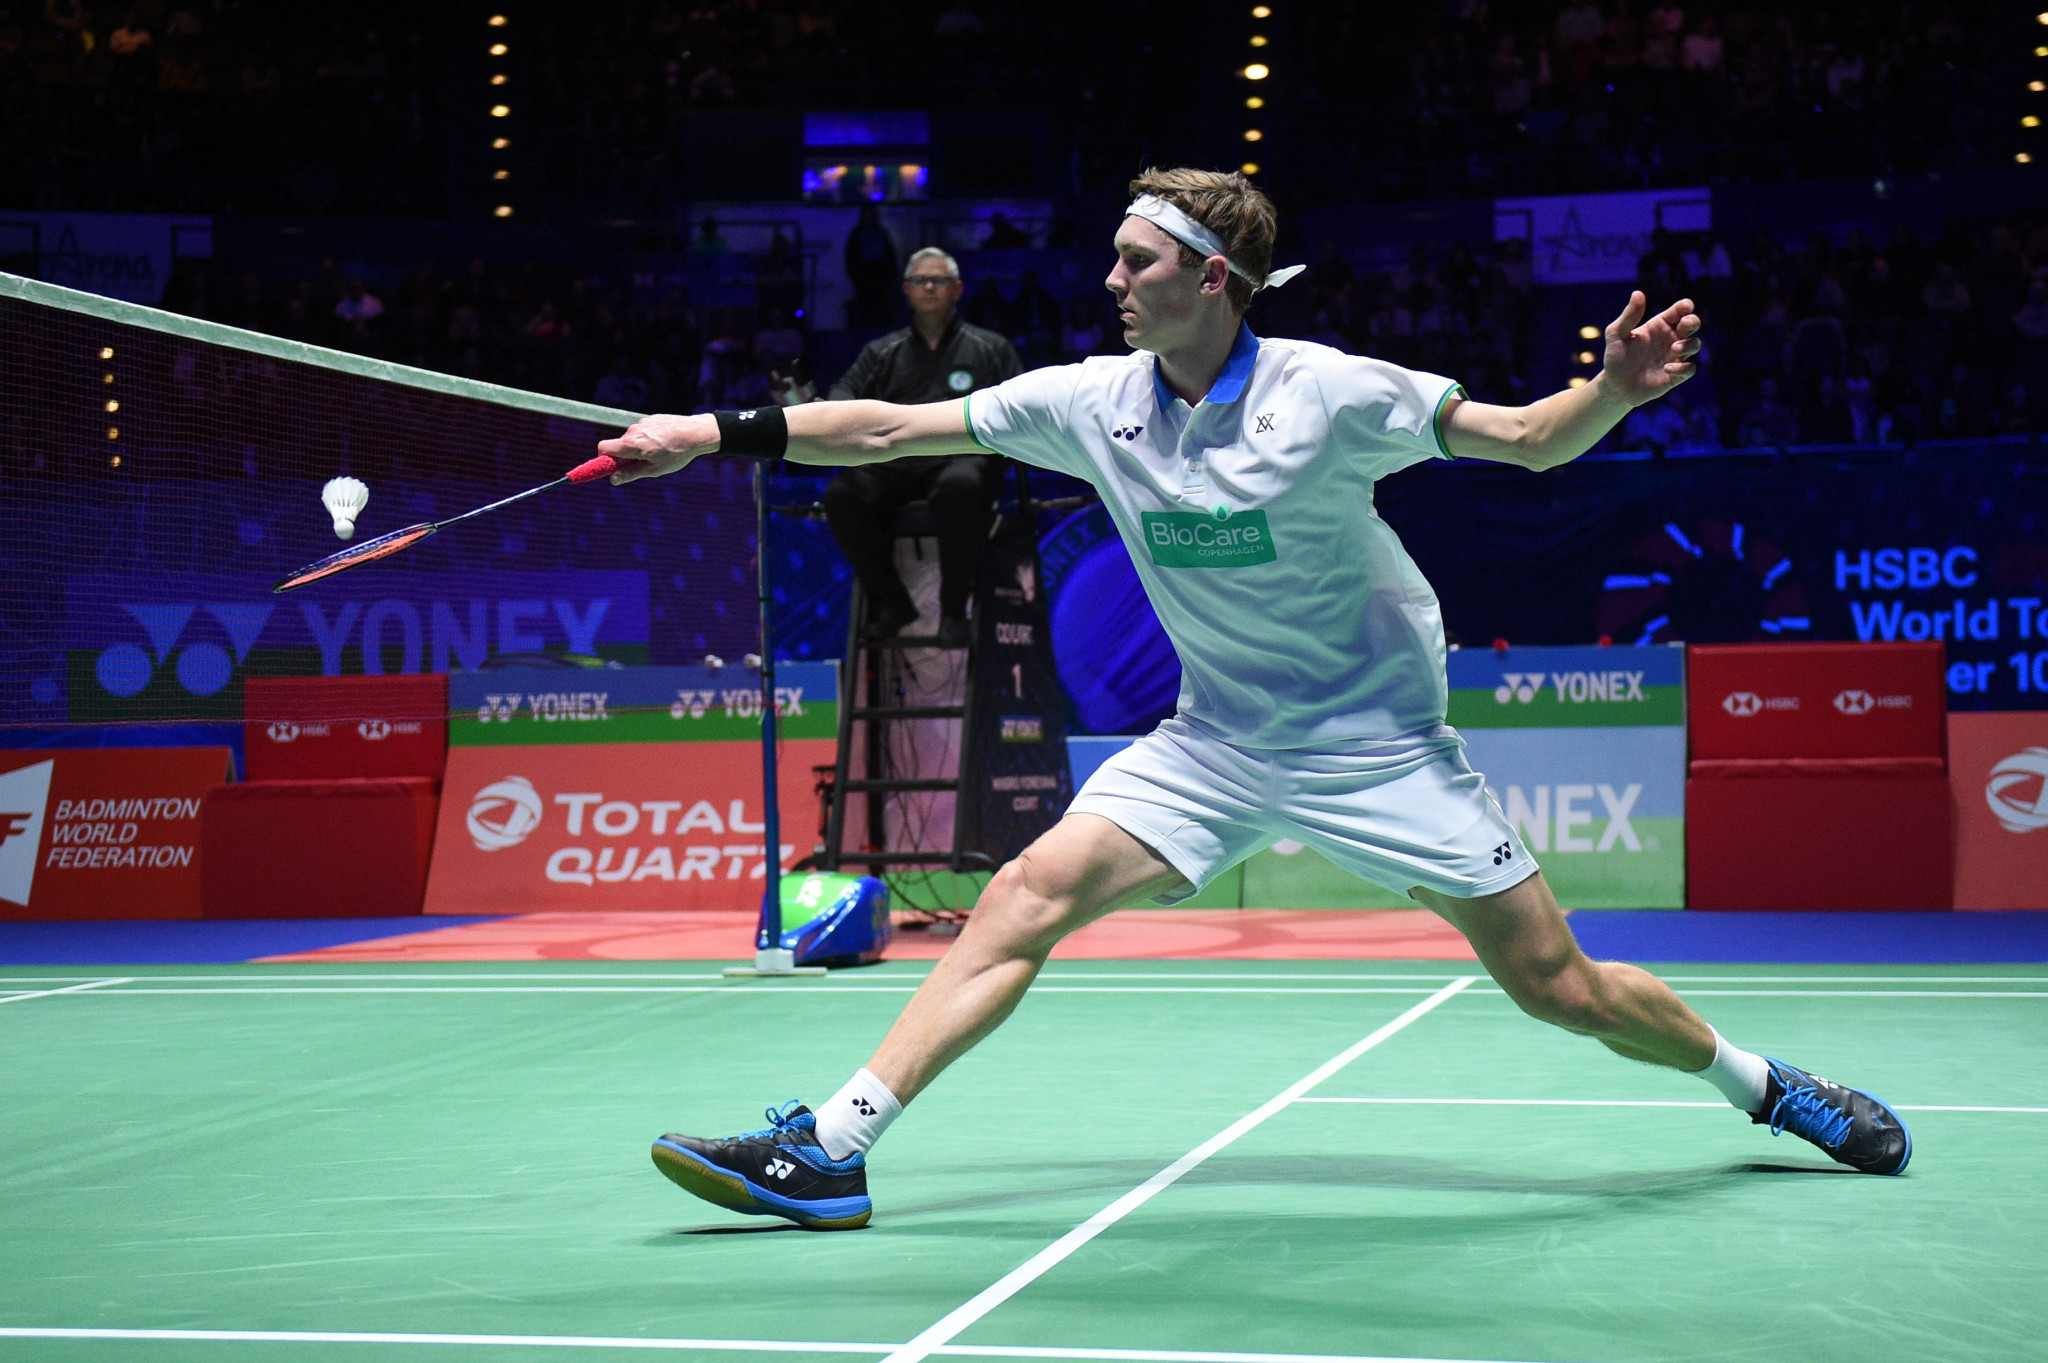 Axelsen and Marín named top seeds for BWF World Tour Finals